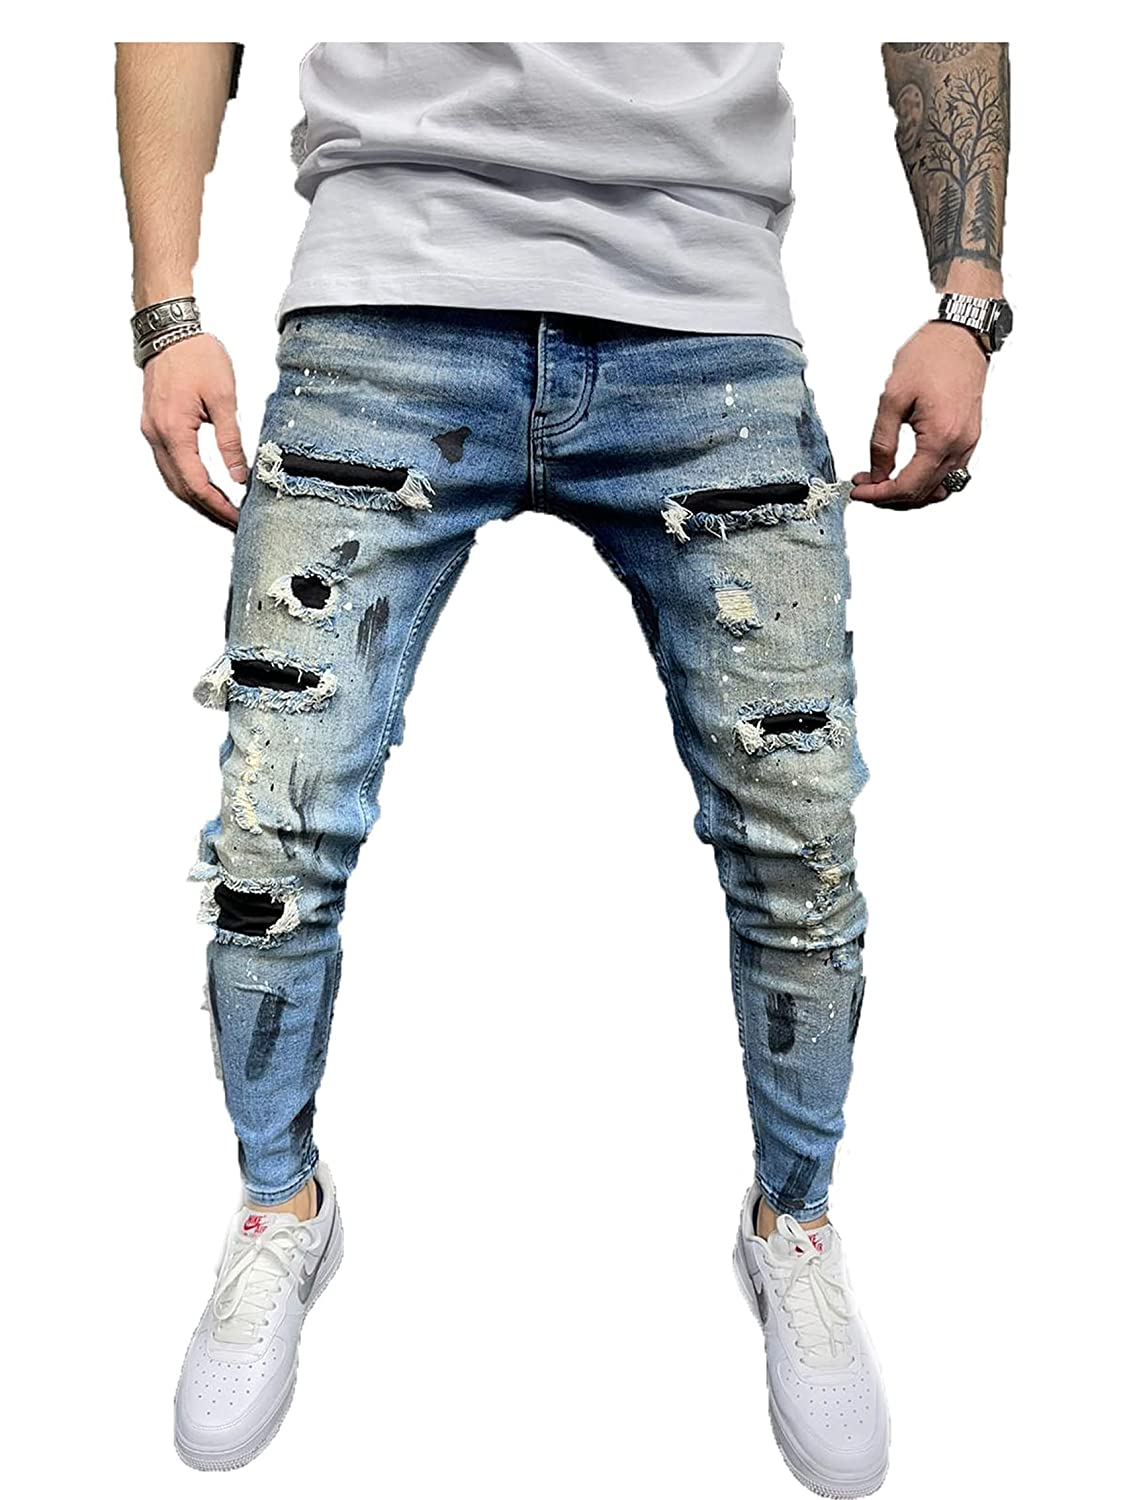 Men's Distressed Slim Denim Pants Patchwork Ripped Fit Jeans Ripped Holes Patch Skinny Jeans Tapered Leg Pants (Small 29.9W,Blue 2)